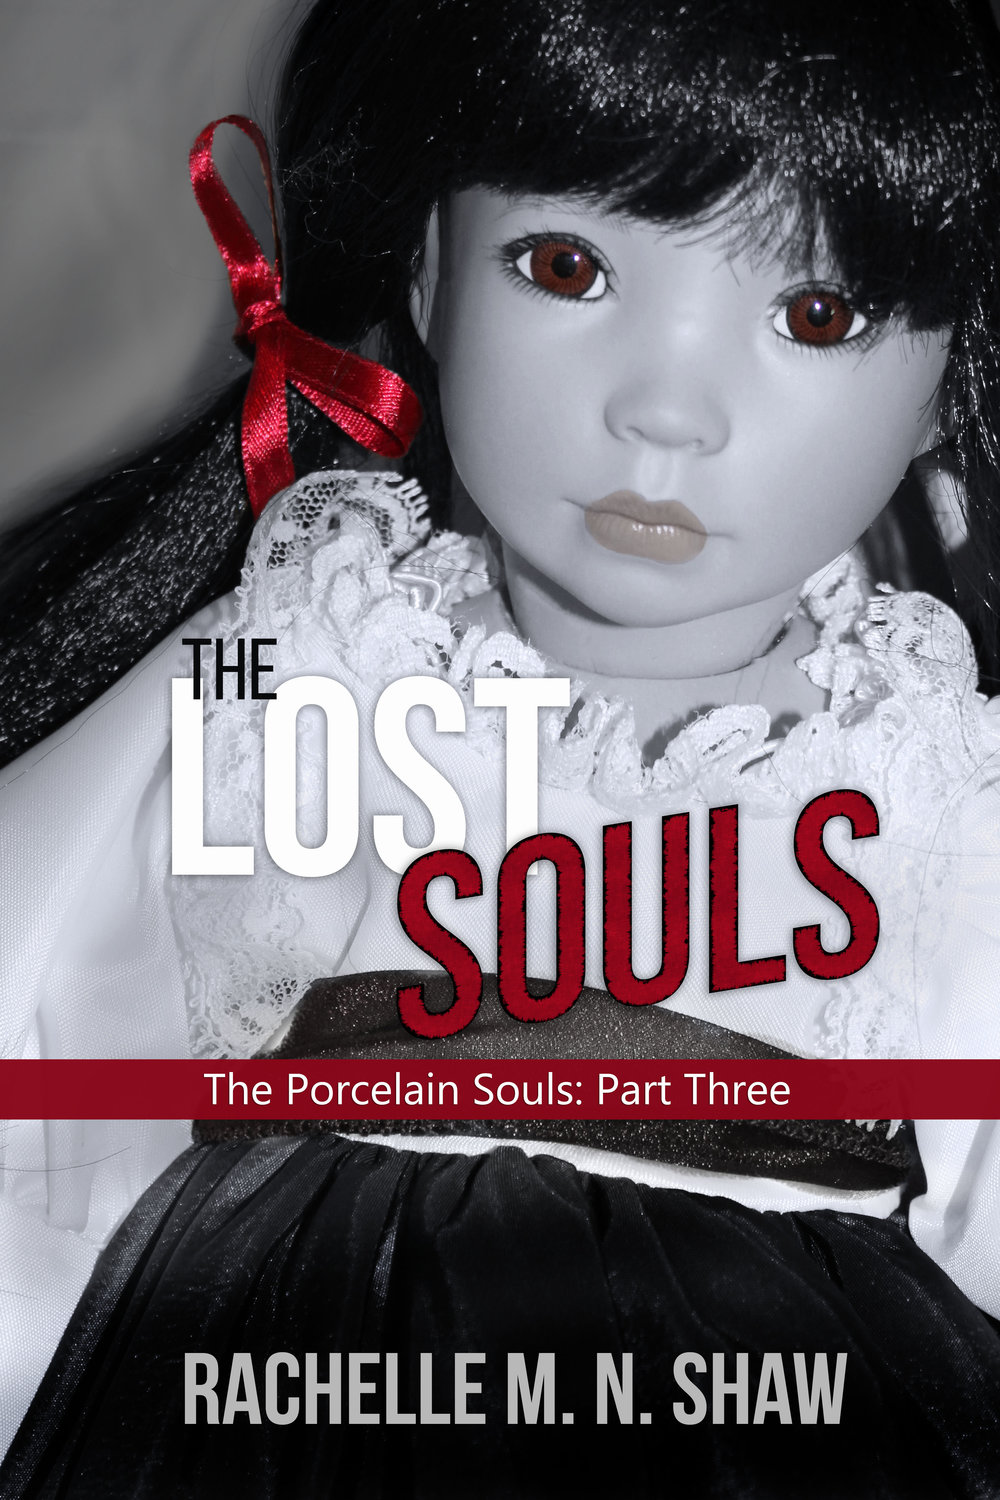 Part 3 of The Porcelain Souls Series: The Lost Soul - Pre-order coming soon to Amazon!A dead cop and a string of mysterious disappearances set the town of Credence on edge. Despite the growing dangers surrounding the Whitson house and the chilling warnings left by her ancestors, Huiliang Zui risks ties with her family and breaks into the abandoned building to find answers. But the tortured spirit residing there demands blood, seeking to eradicate his past life's miseries and complete his collection.When Alex Wingate helps Huili out of a tight spot, an unexpected friendship forms. However, it isn't long before old wounds resurface and motives are questioned. Can they overcome past judgements and work together to destroy the demon? Or will they, too, fall victim to his trap and perish like the lost souls before them?In this nail-biting installment of The Porcelain Souls series, the fate of Credence rests on one girl's shoulders. If she fails, they'll all be devoured.